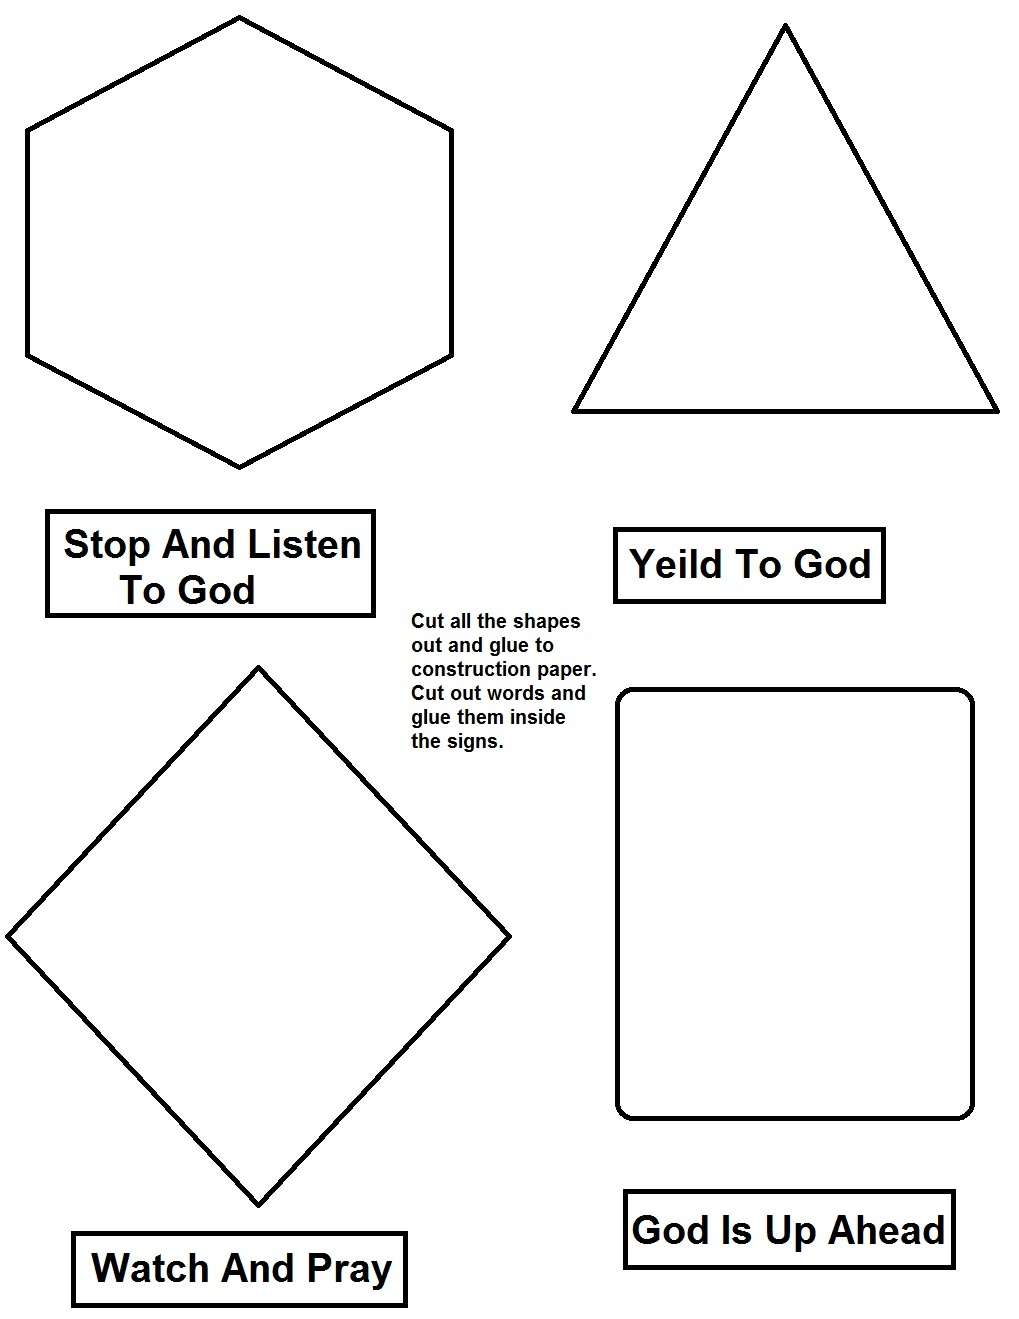 Activity coloring pages on crossing the street just b cause for Street sign coloring pages